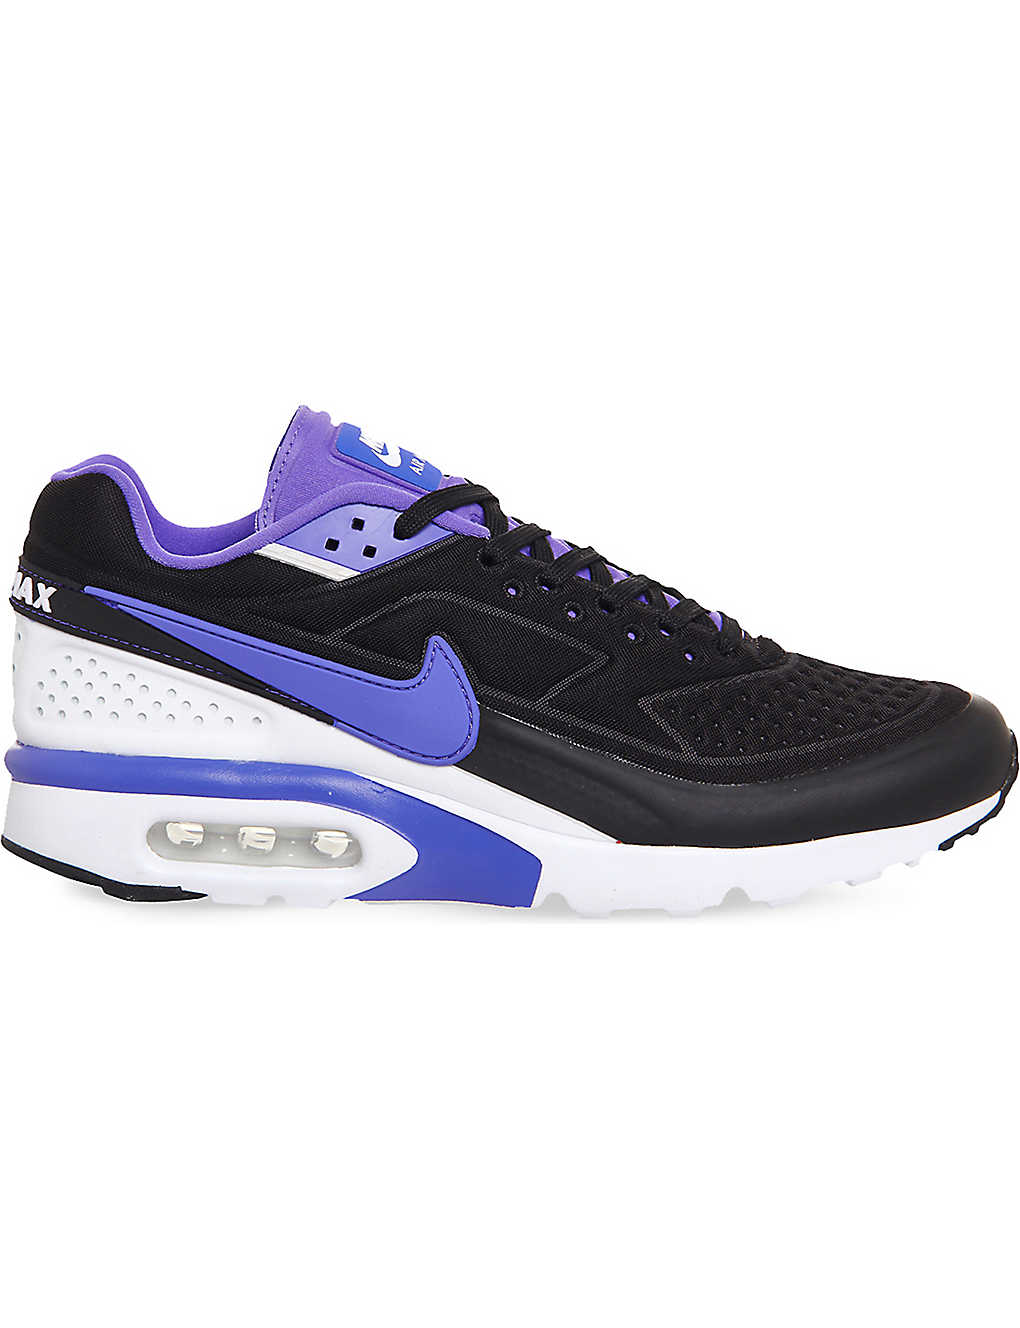 buy popular 7a69e 214fc NIKE Air max bw ultra trainers